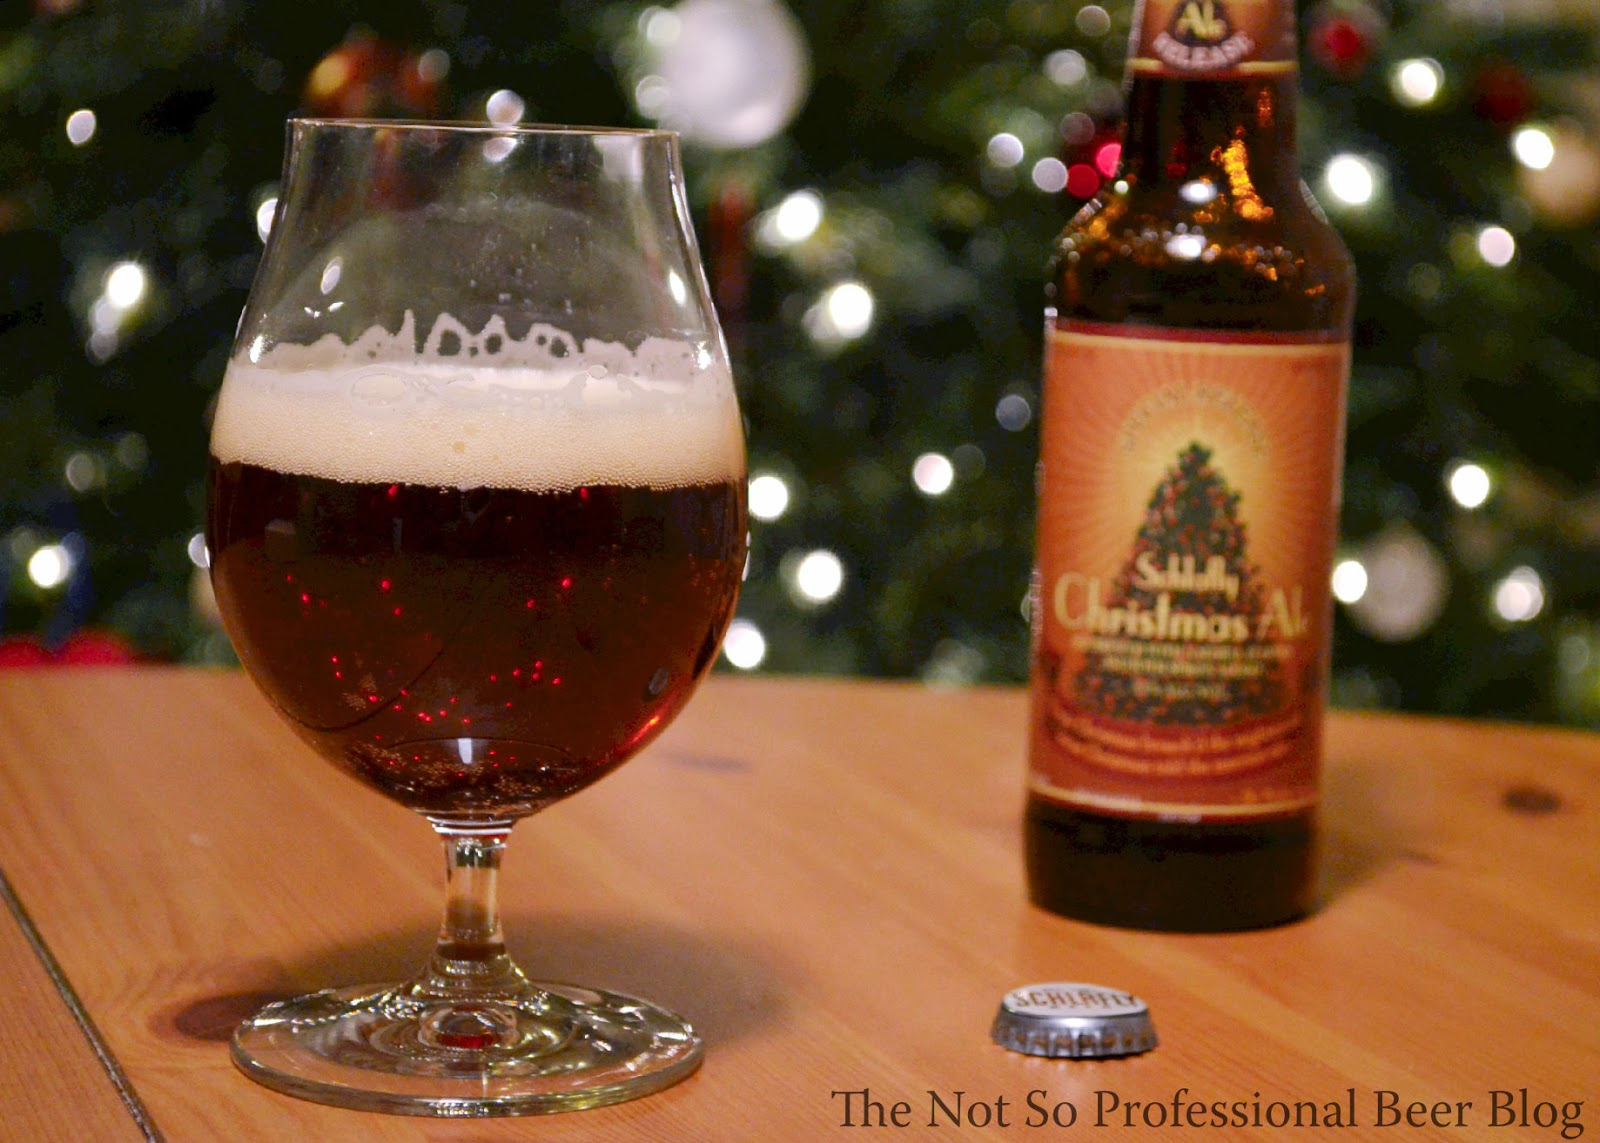 The Not So Professional Beer Blog: 2013